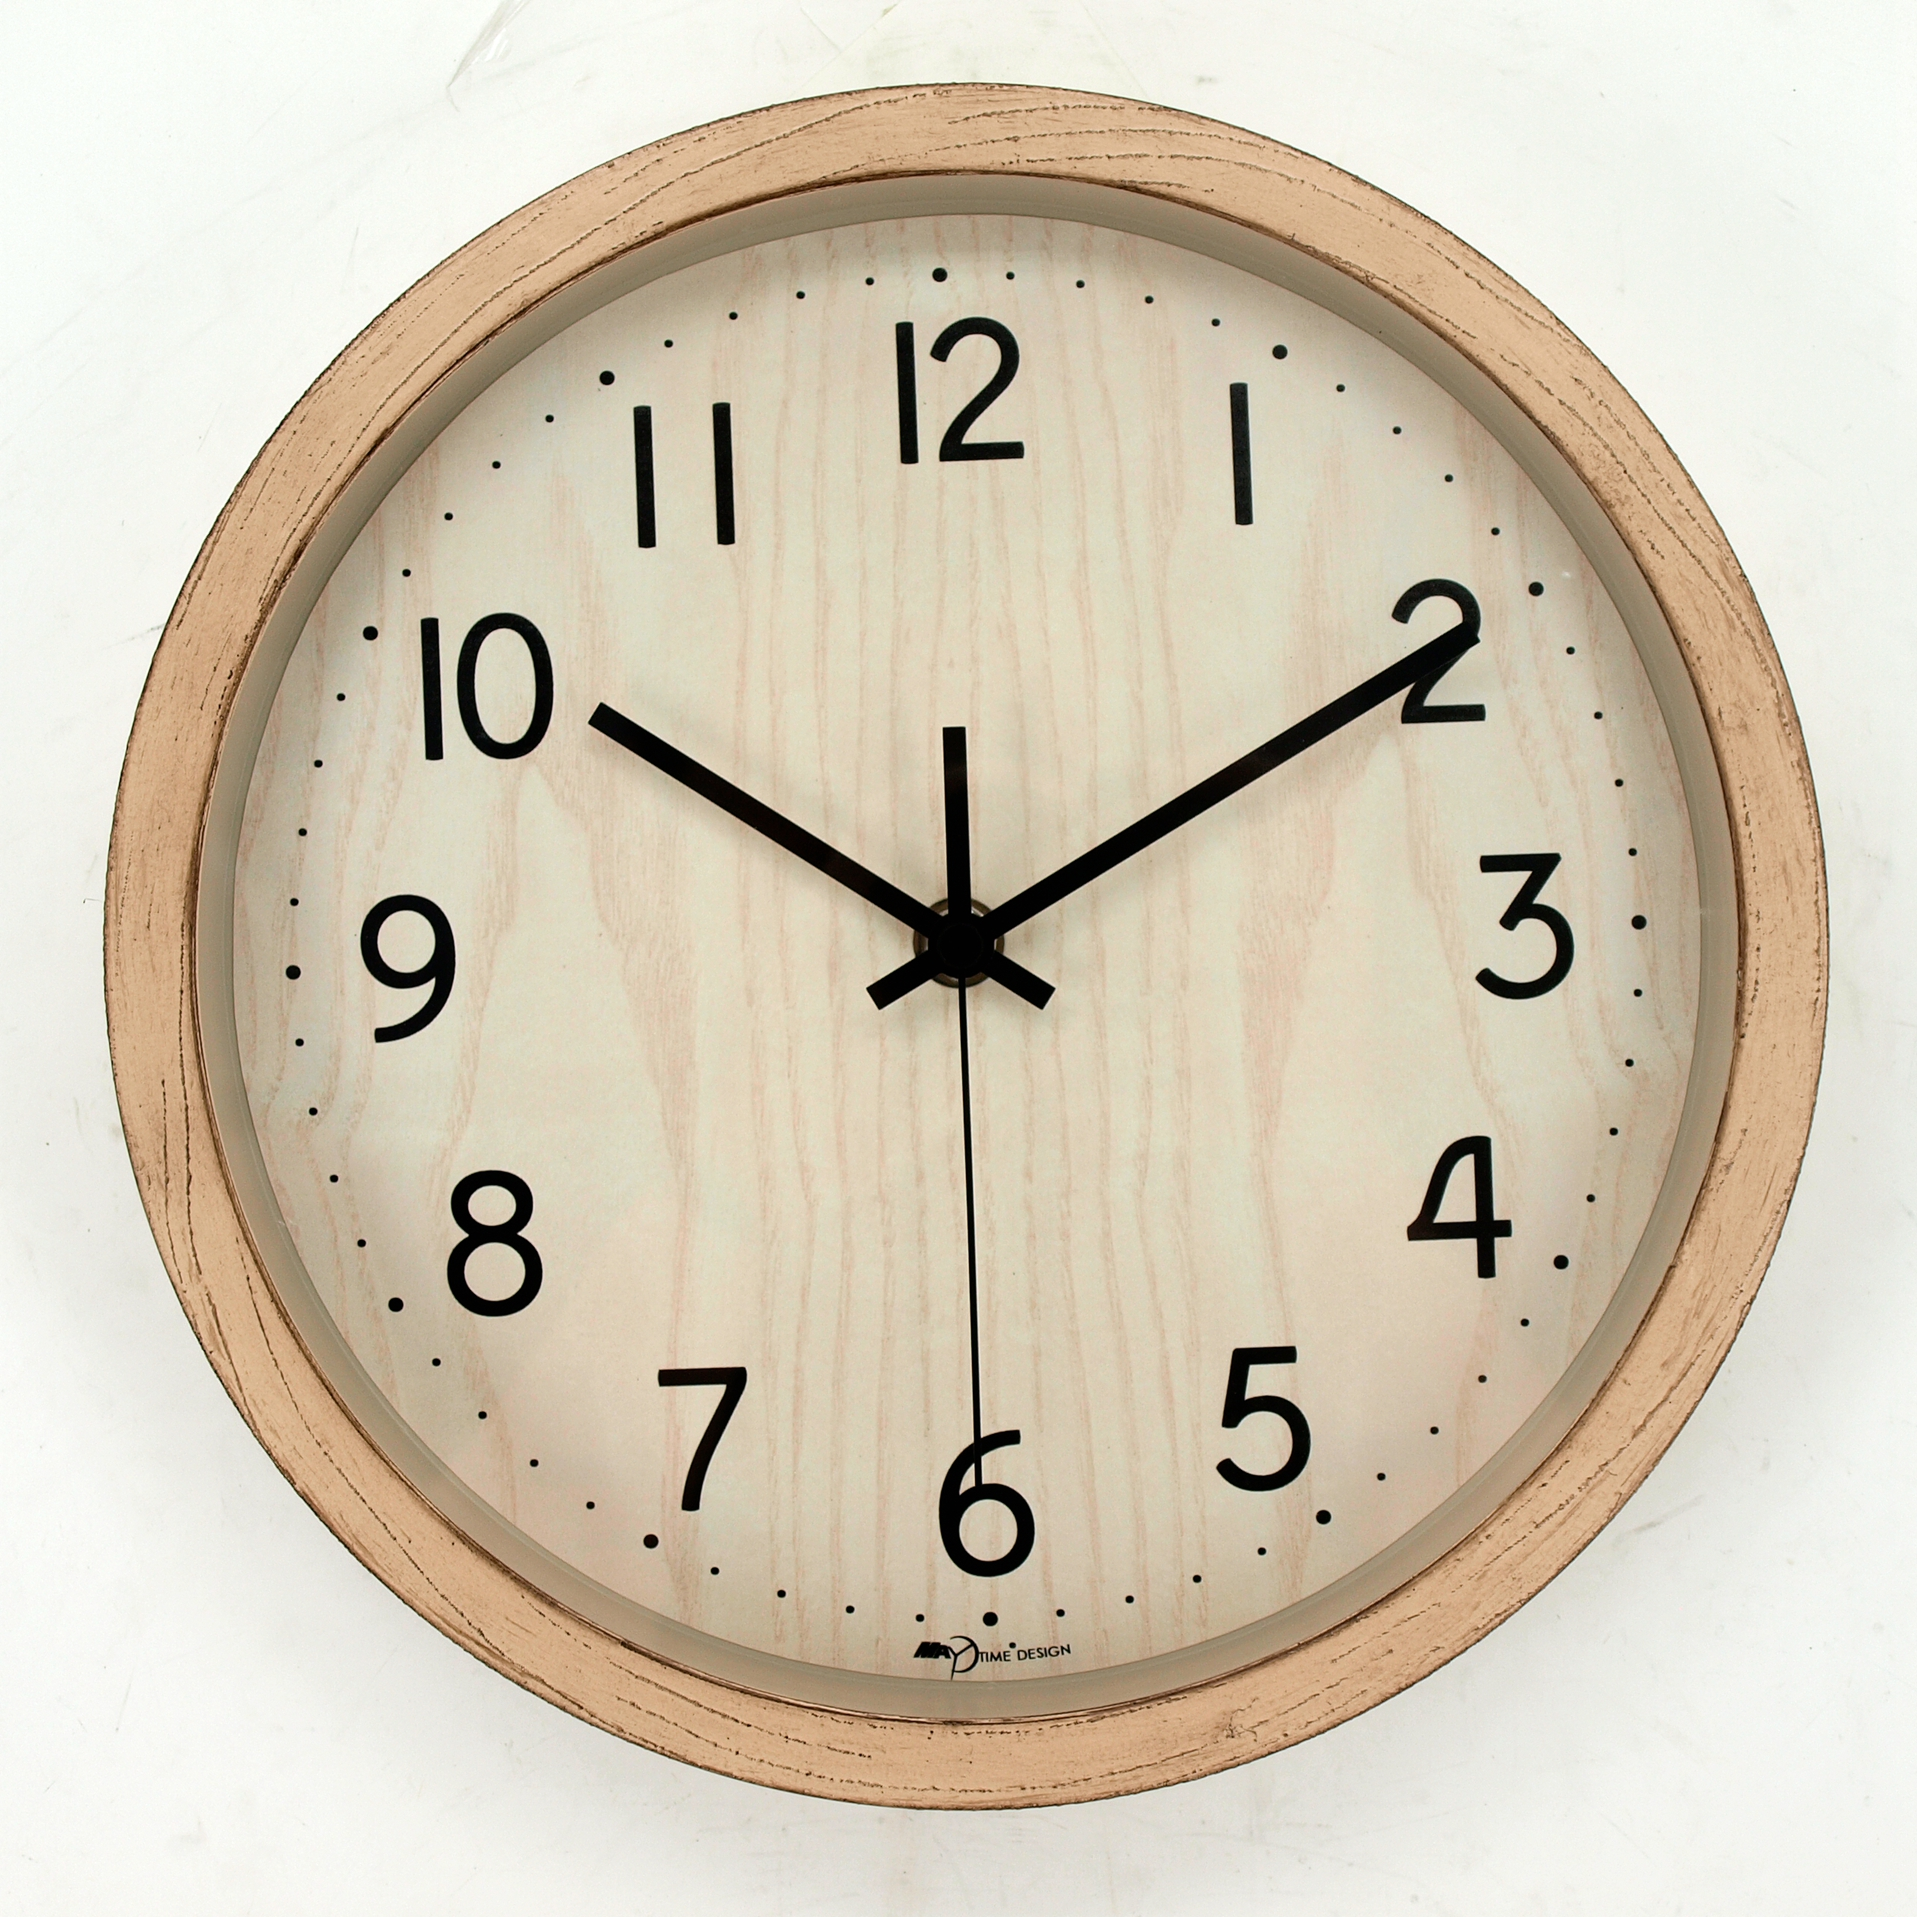 10 Inch Silent Wall Clock Wood Non Ticking Home Decor Vintage Wooden Clocks Distressed Goods Decorative